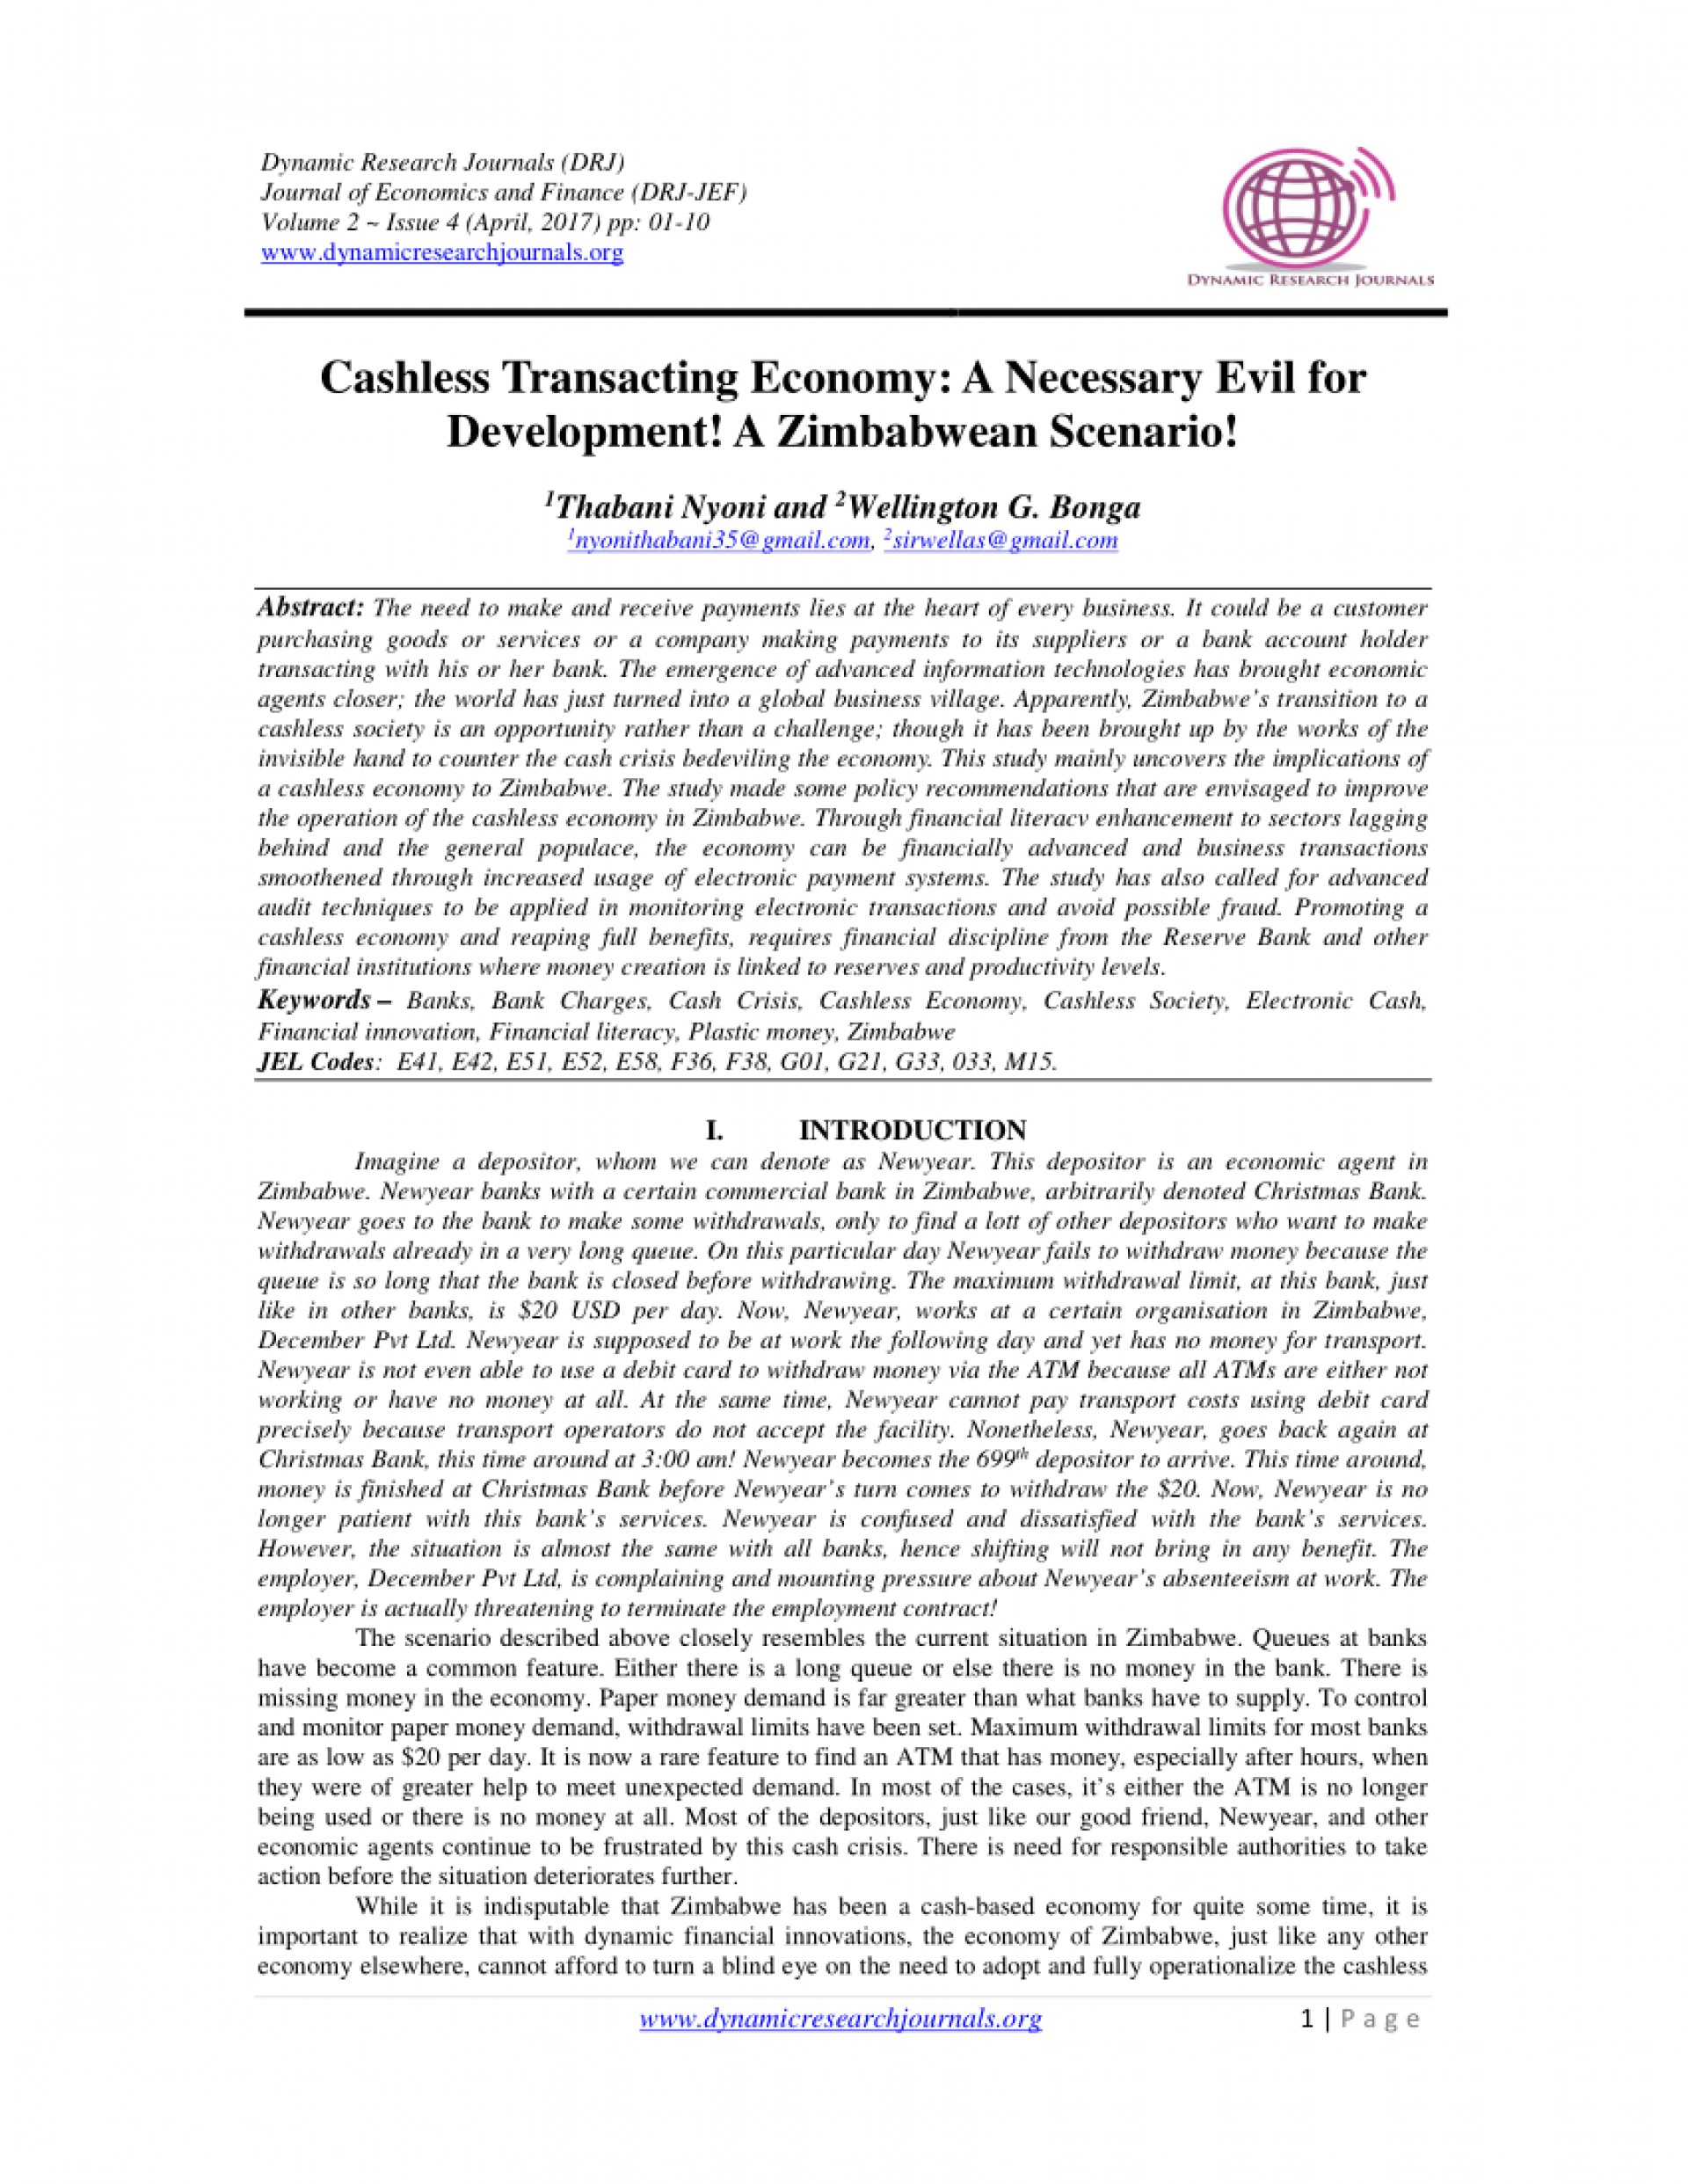 007 Cashless Economy Research Paper Frightening Cash To Papers Pdf 1920